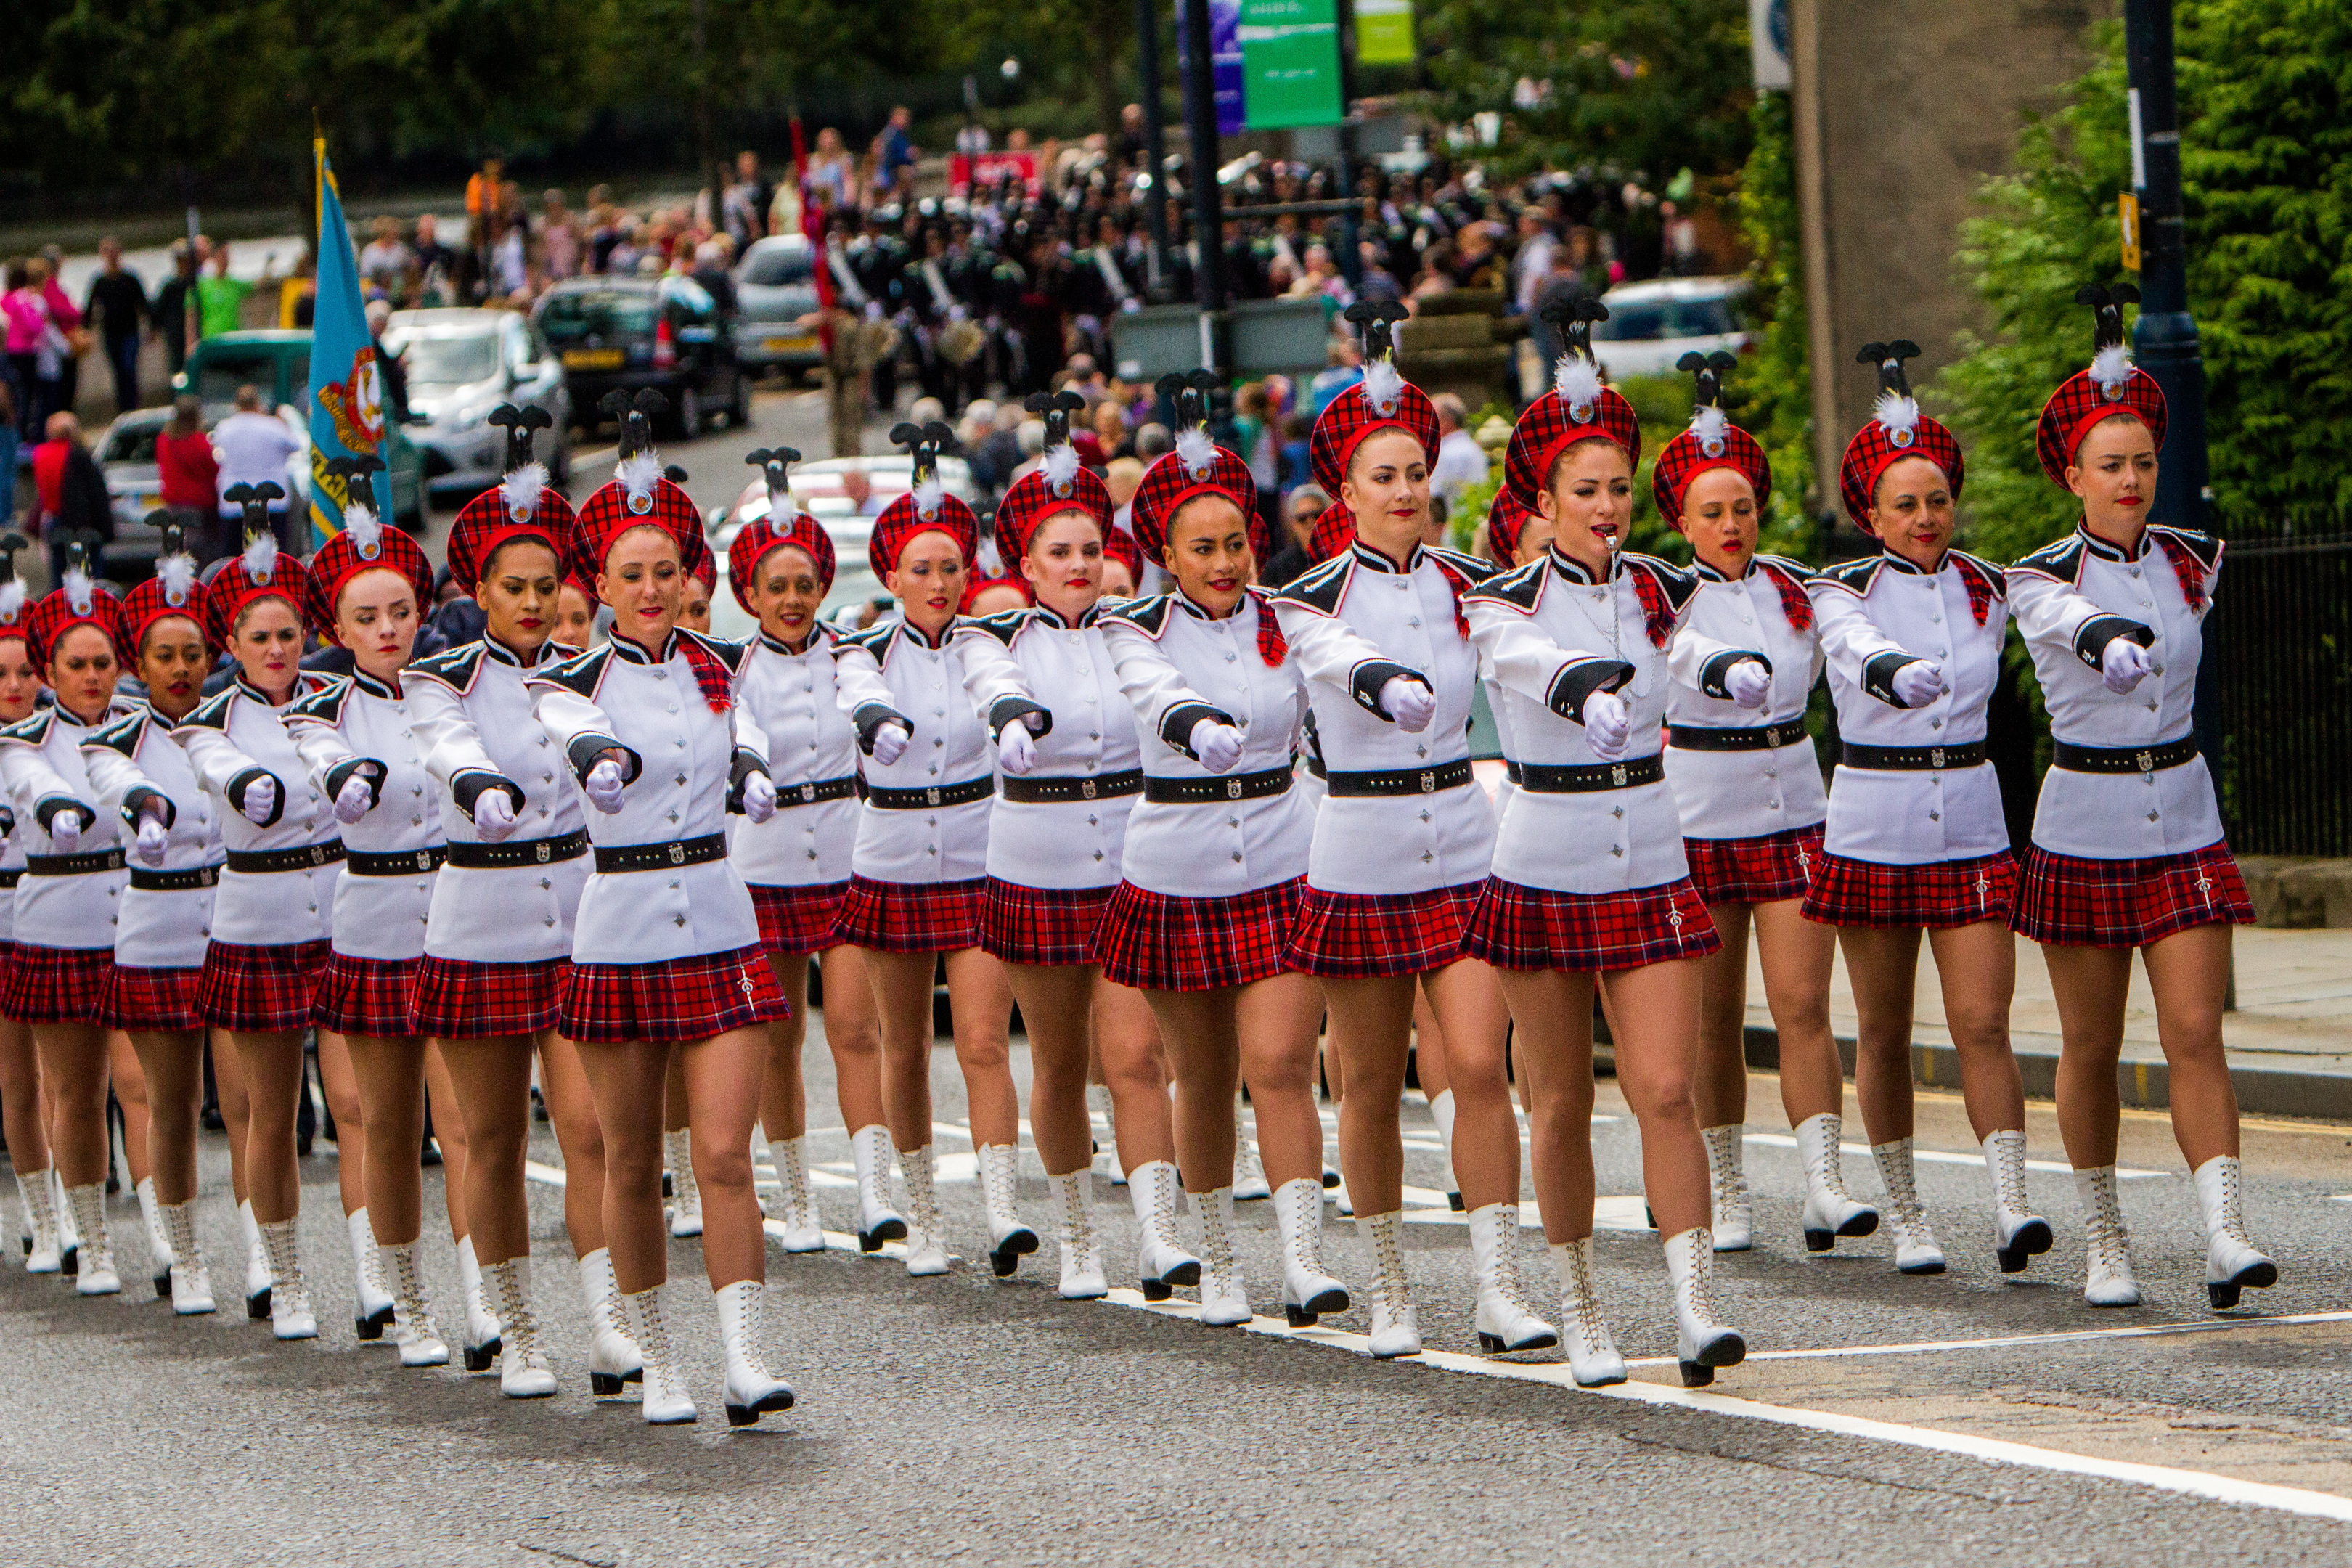 Lochiel Marching Drill Team (the oldest established marching team in New Zealand). Tay Street, Perth.